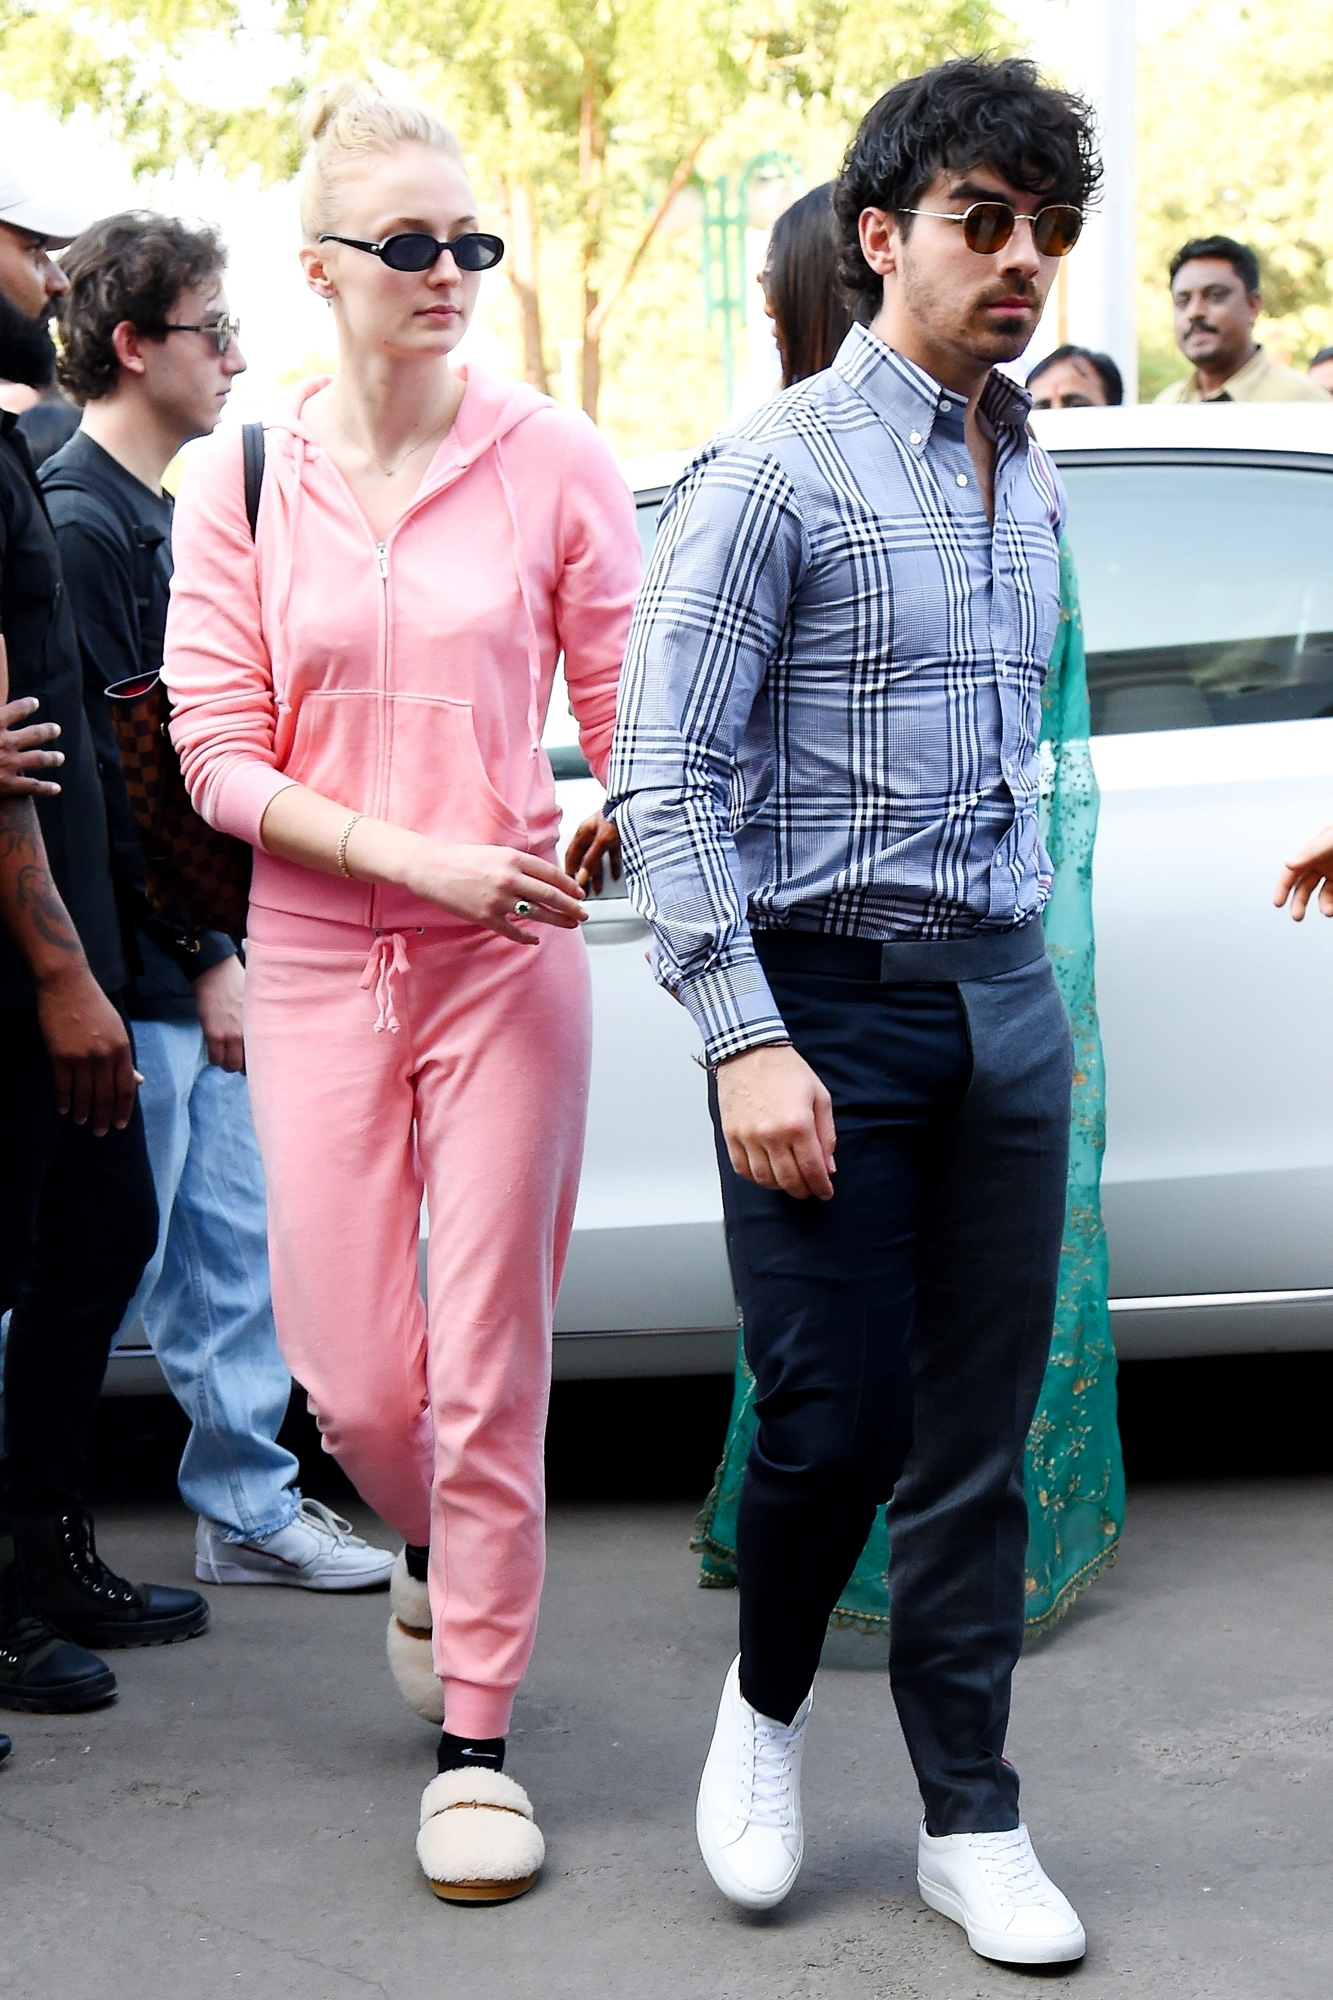 Joe Jonas and other celebrity guest arrive in Jodhpur for Nick and Priyanka's royal reception